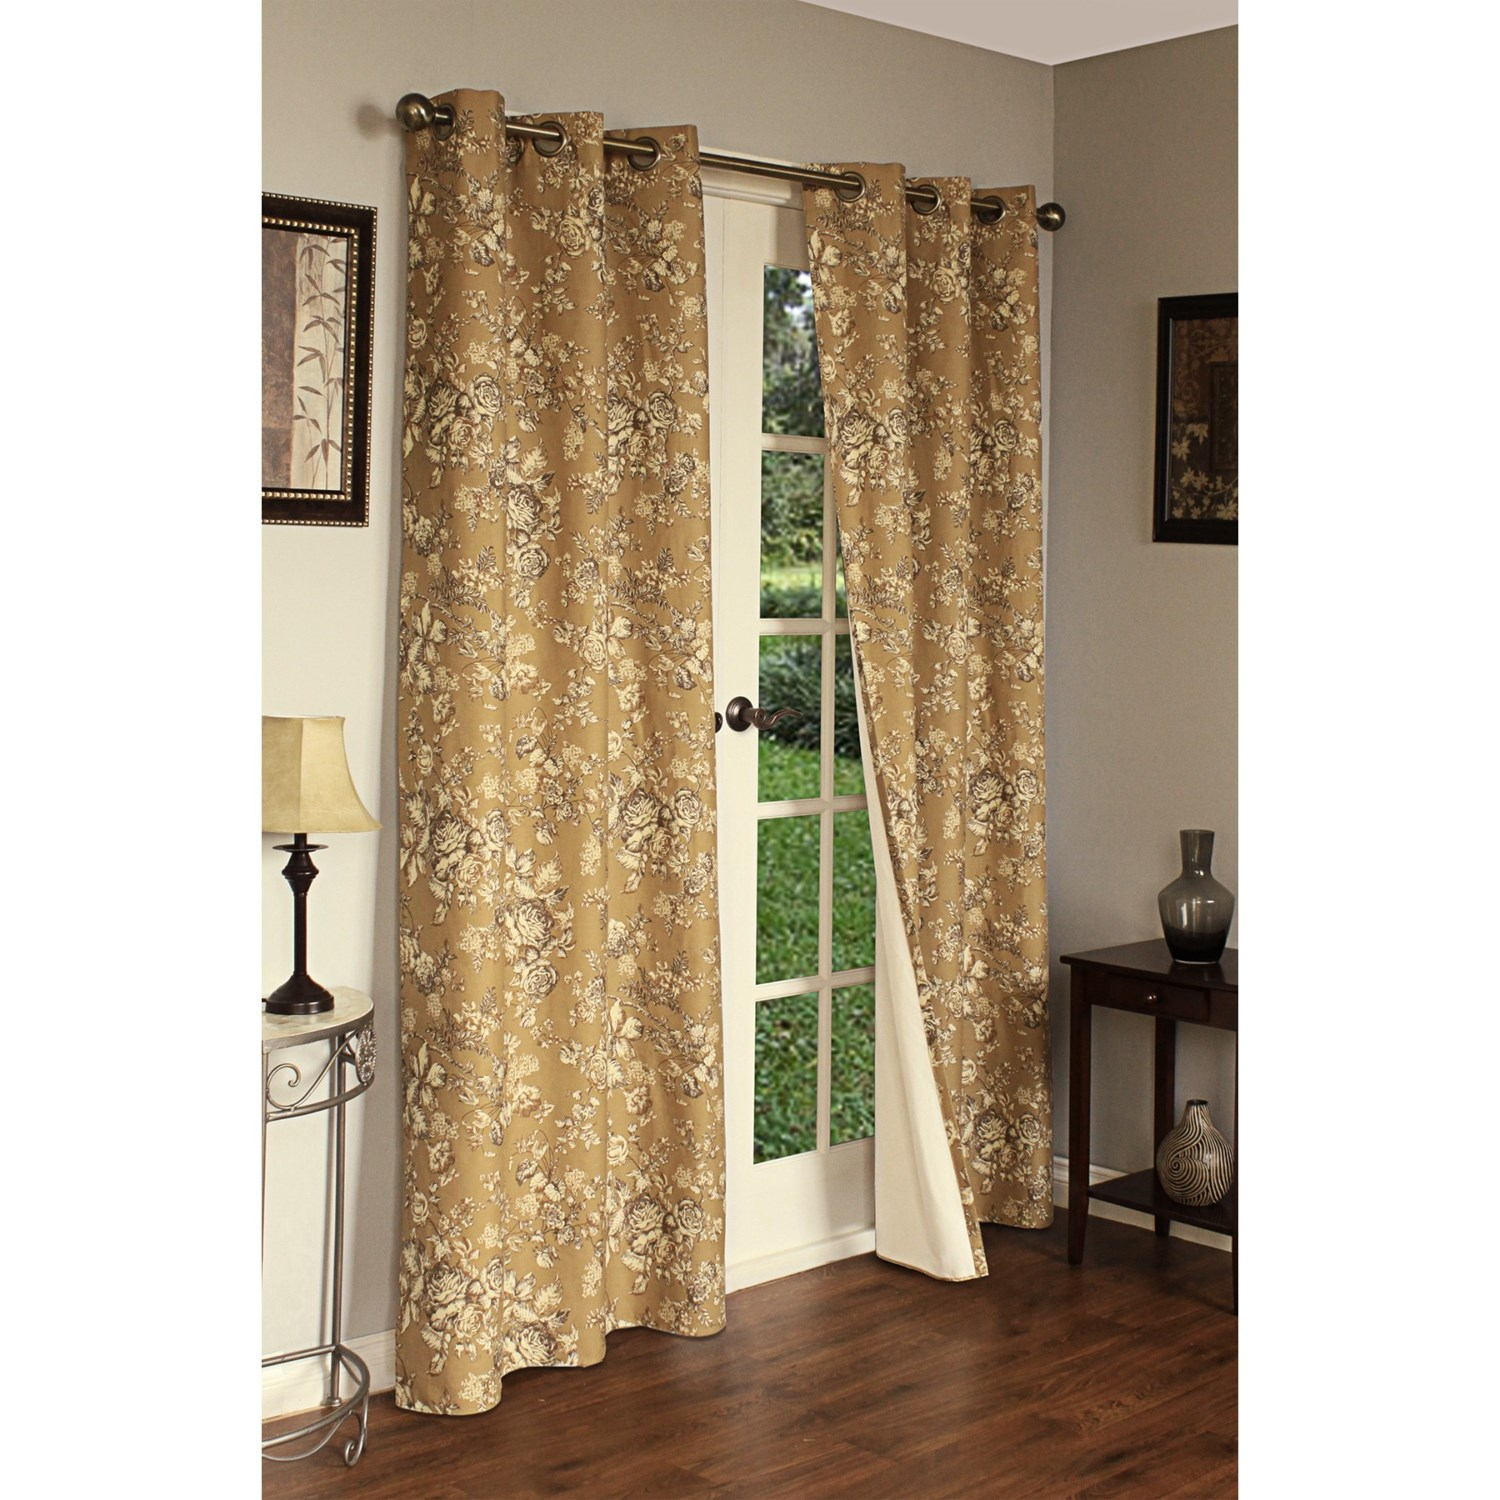 Thermalogic Weathermate Hanover Floral Curtains 160x84 Grommet Top Insulated 6617v Save 53